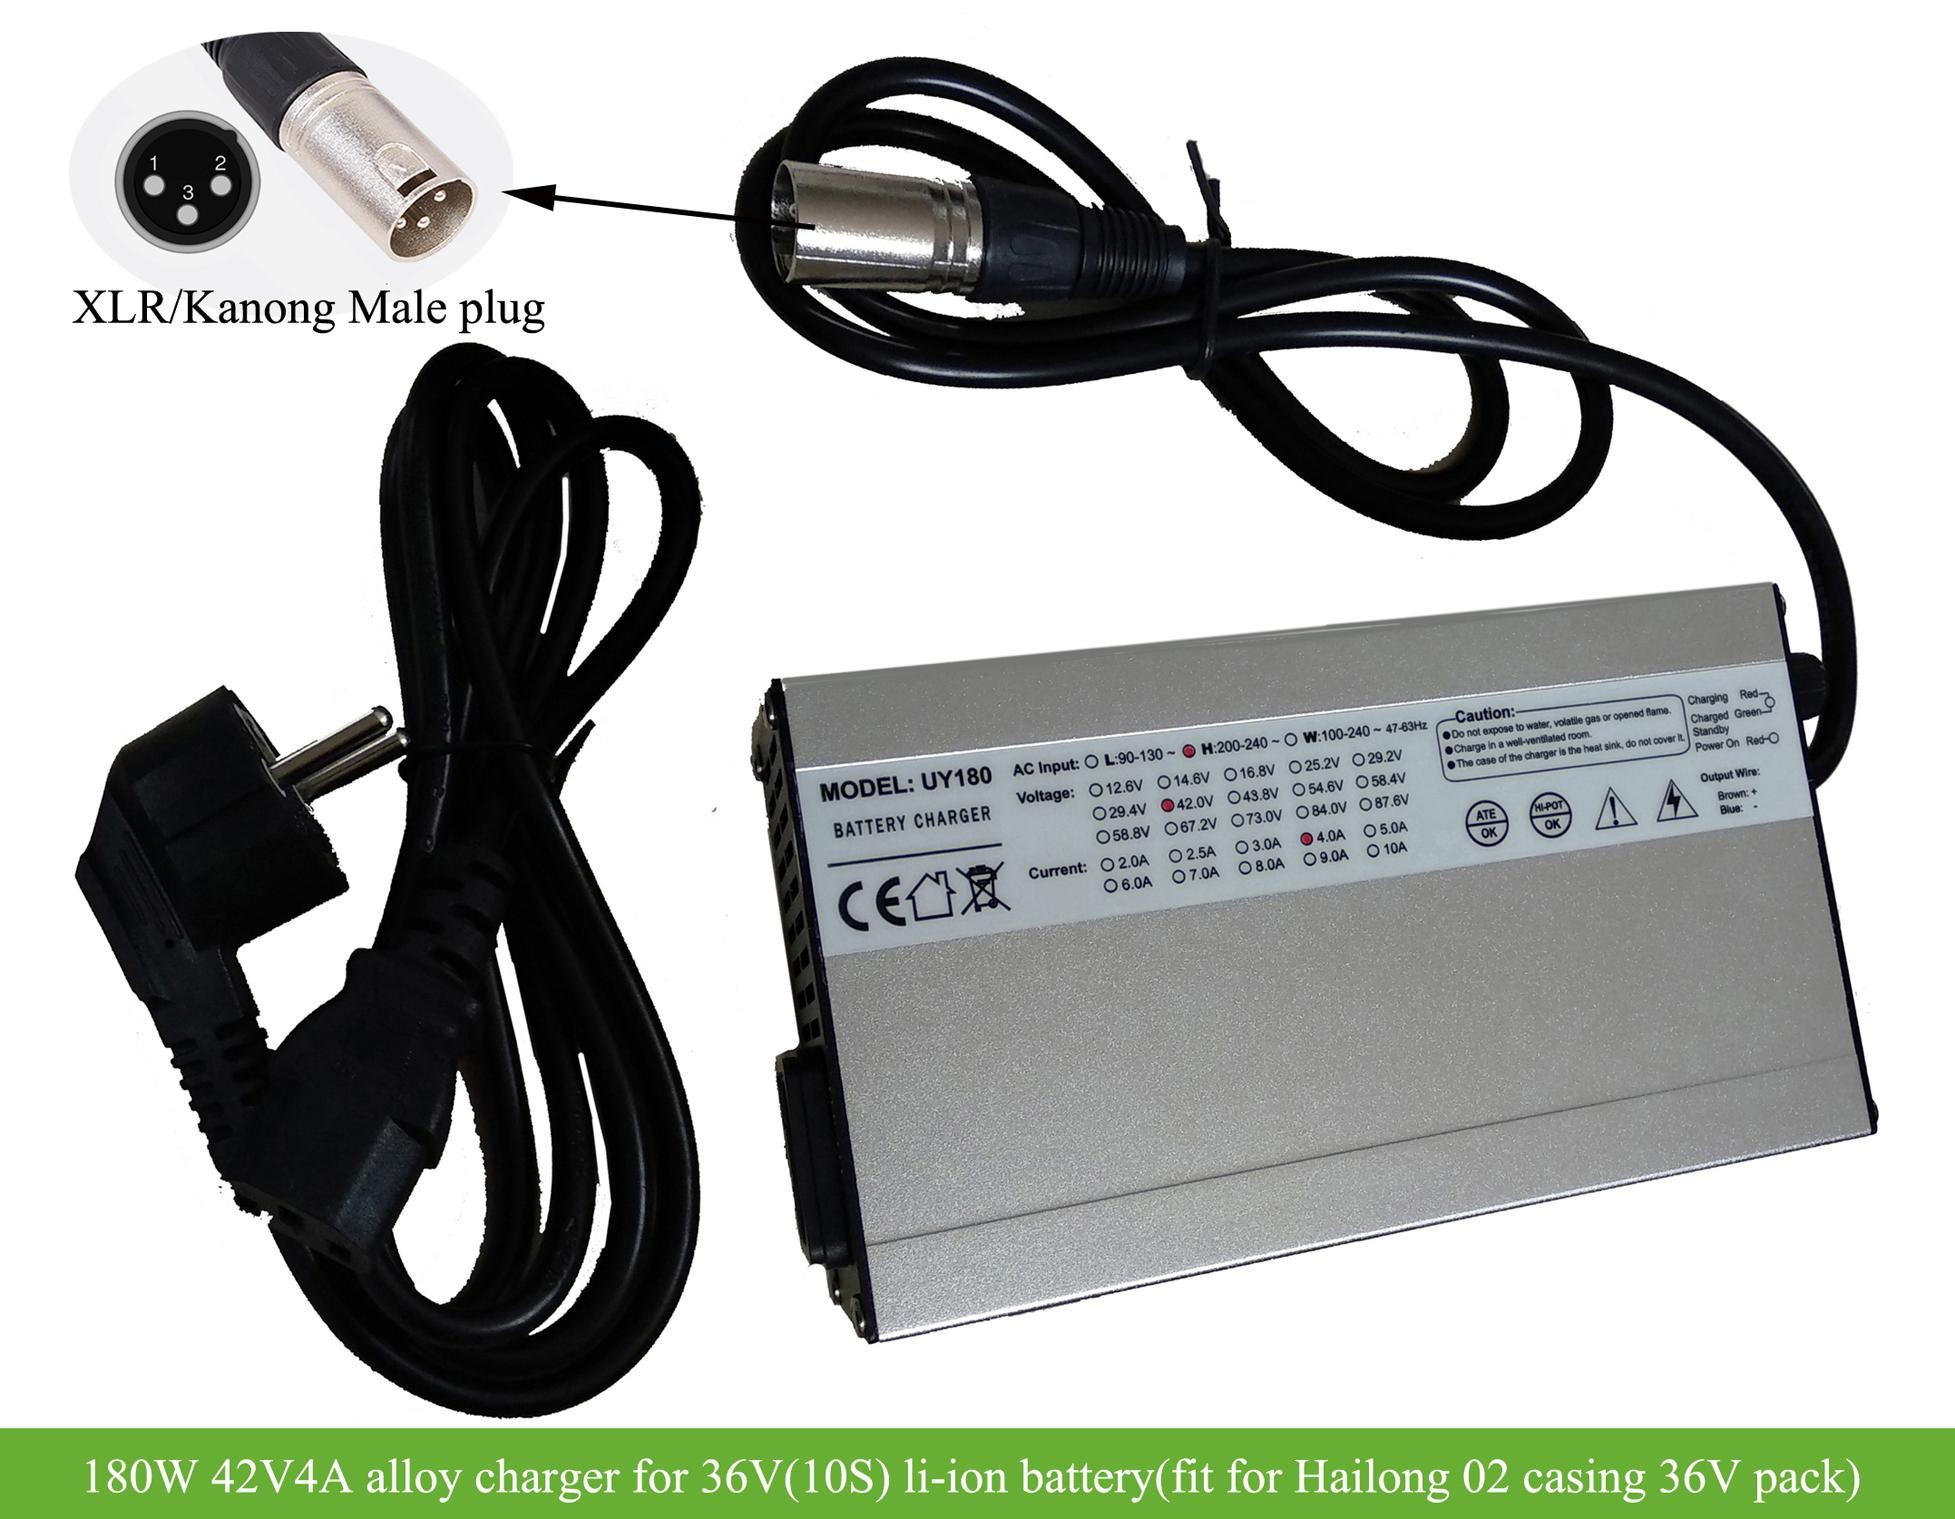 hight resolution of 36v hailong2 downtube battery charger 180w 42v 4a with xlr kanong connector